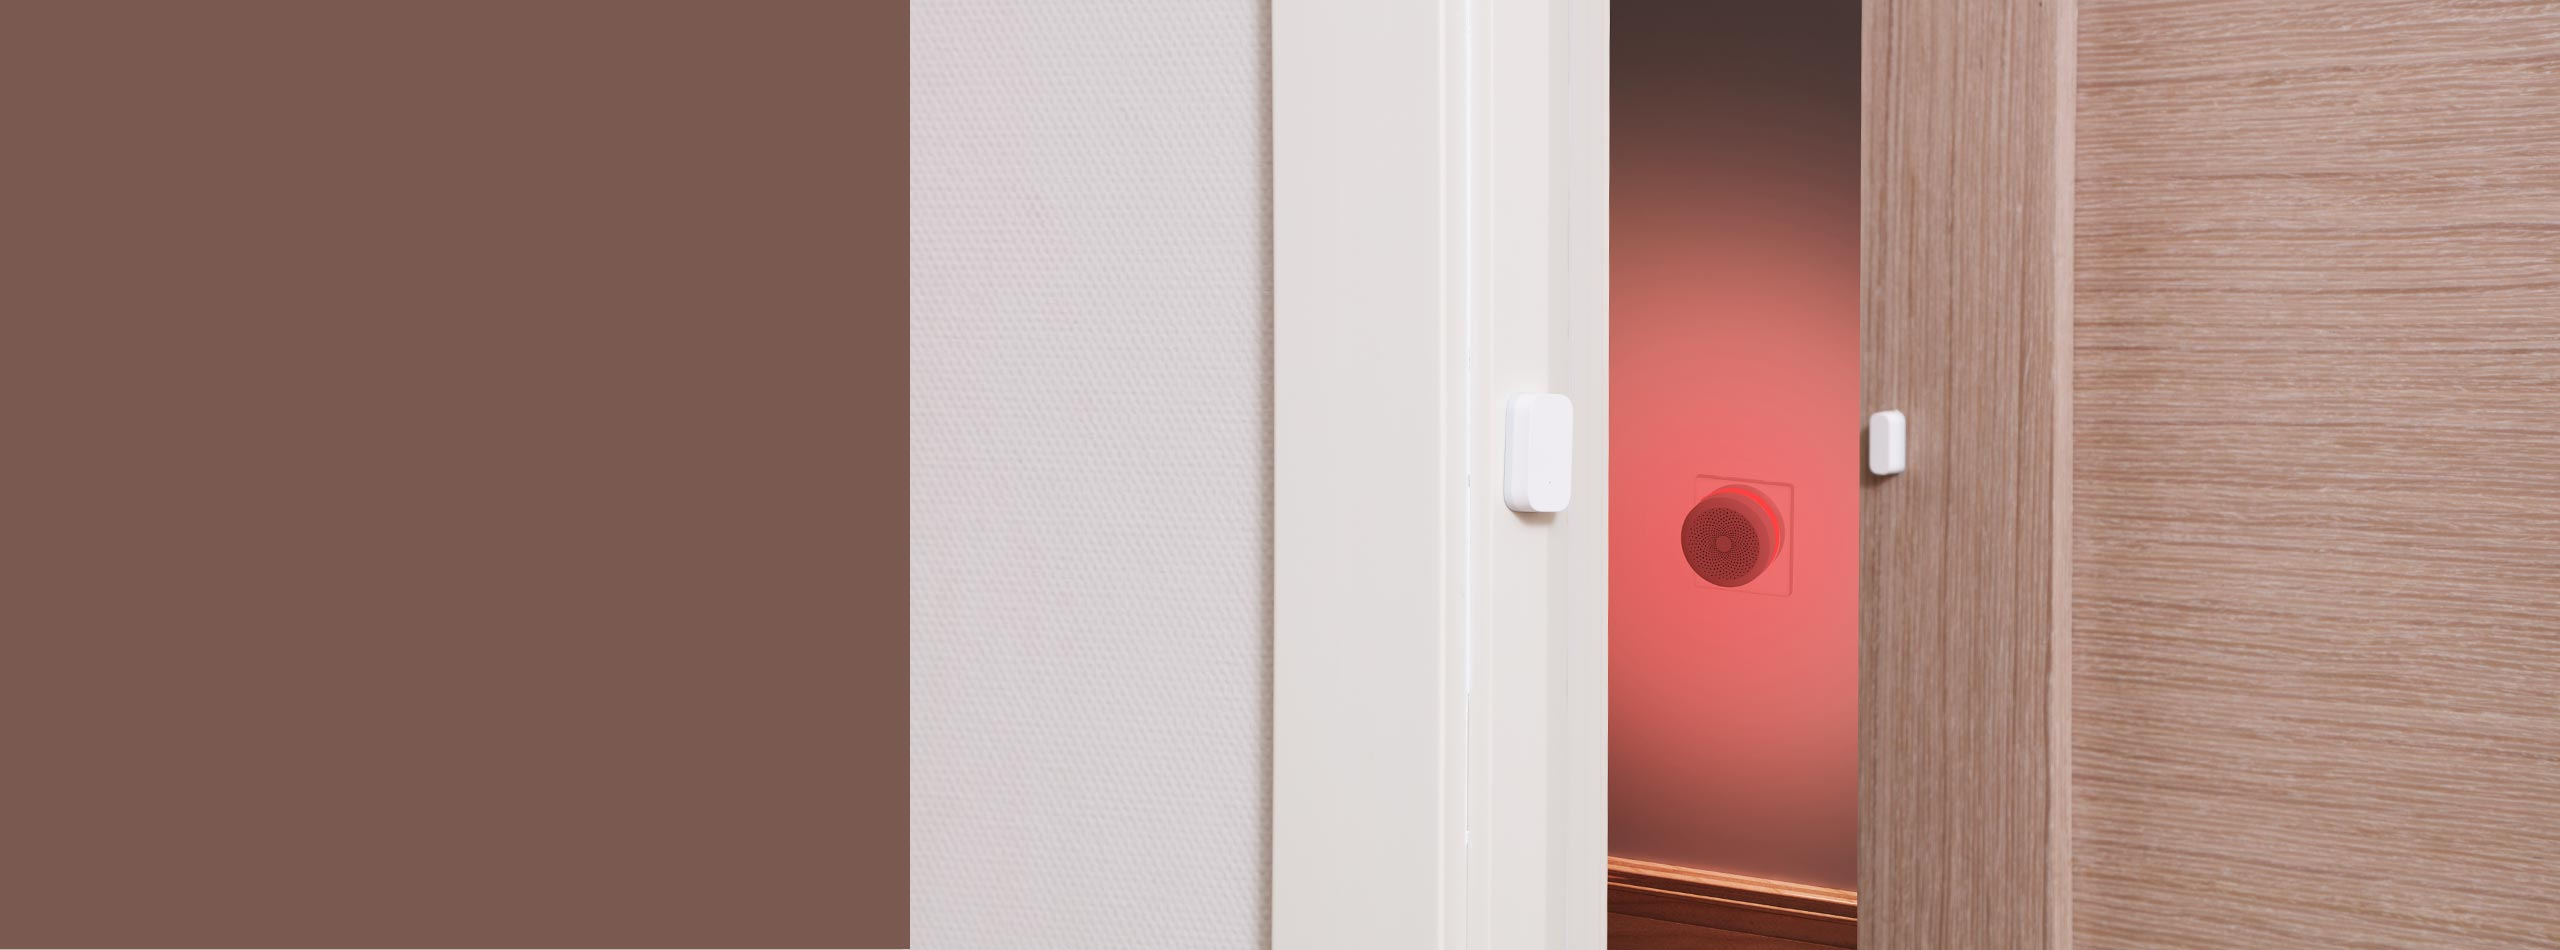 home security with Aqara door and window alarms